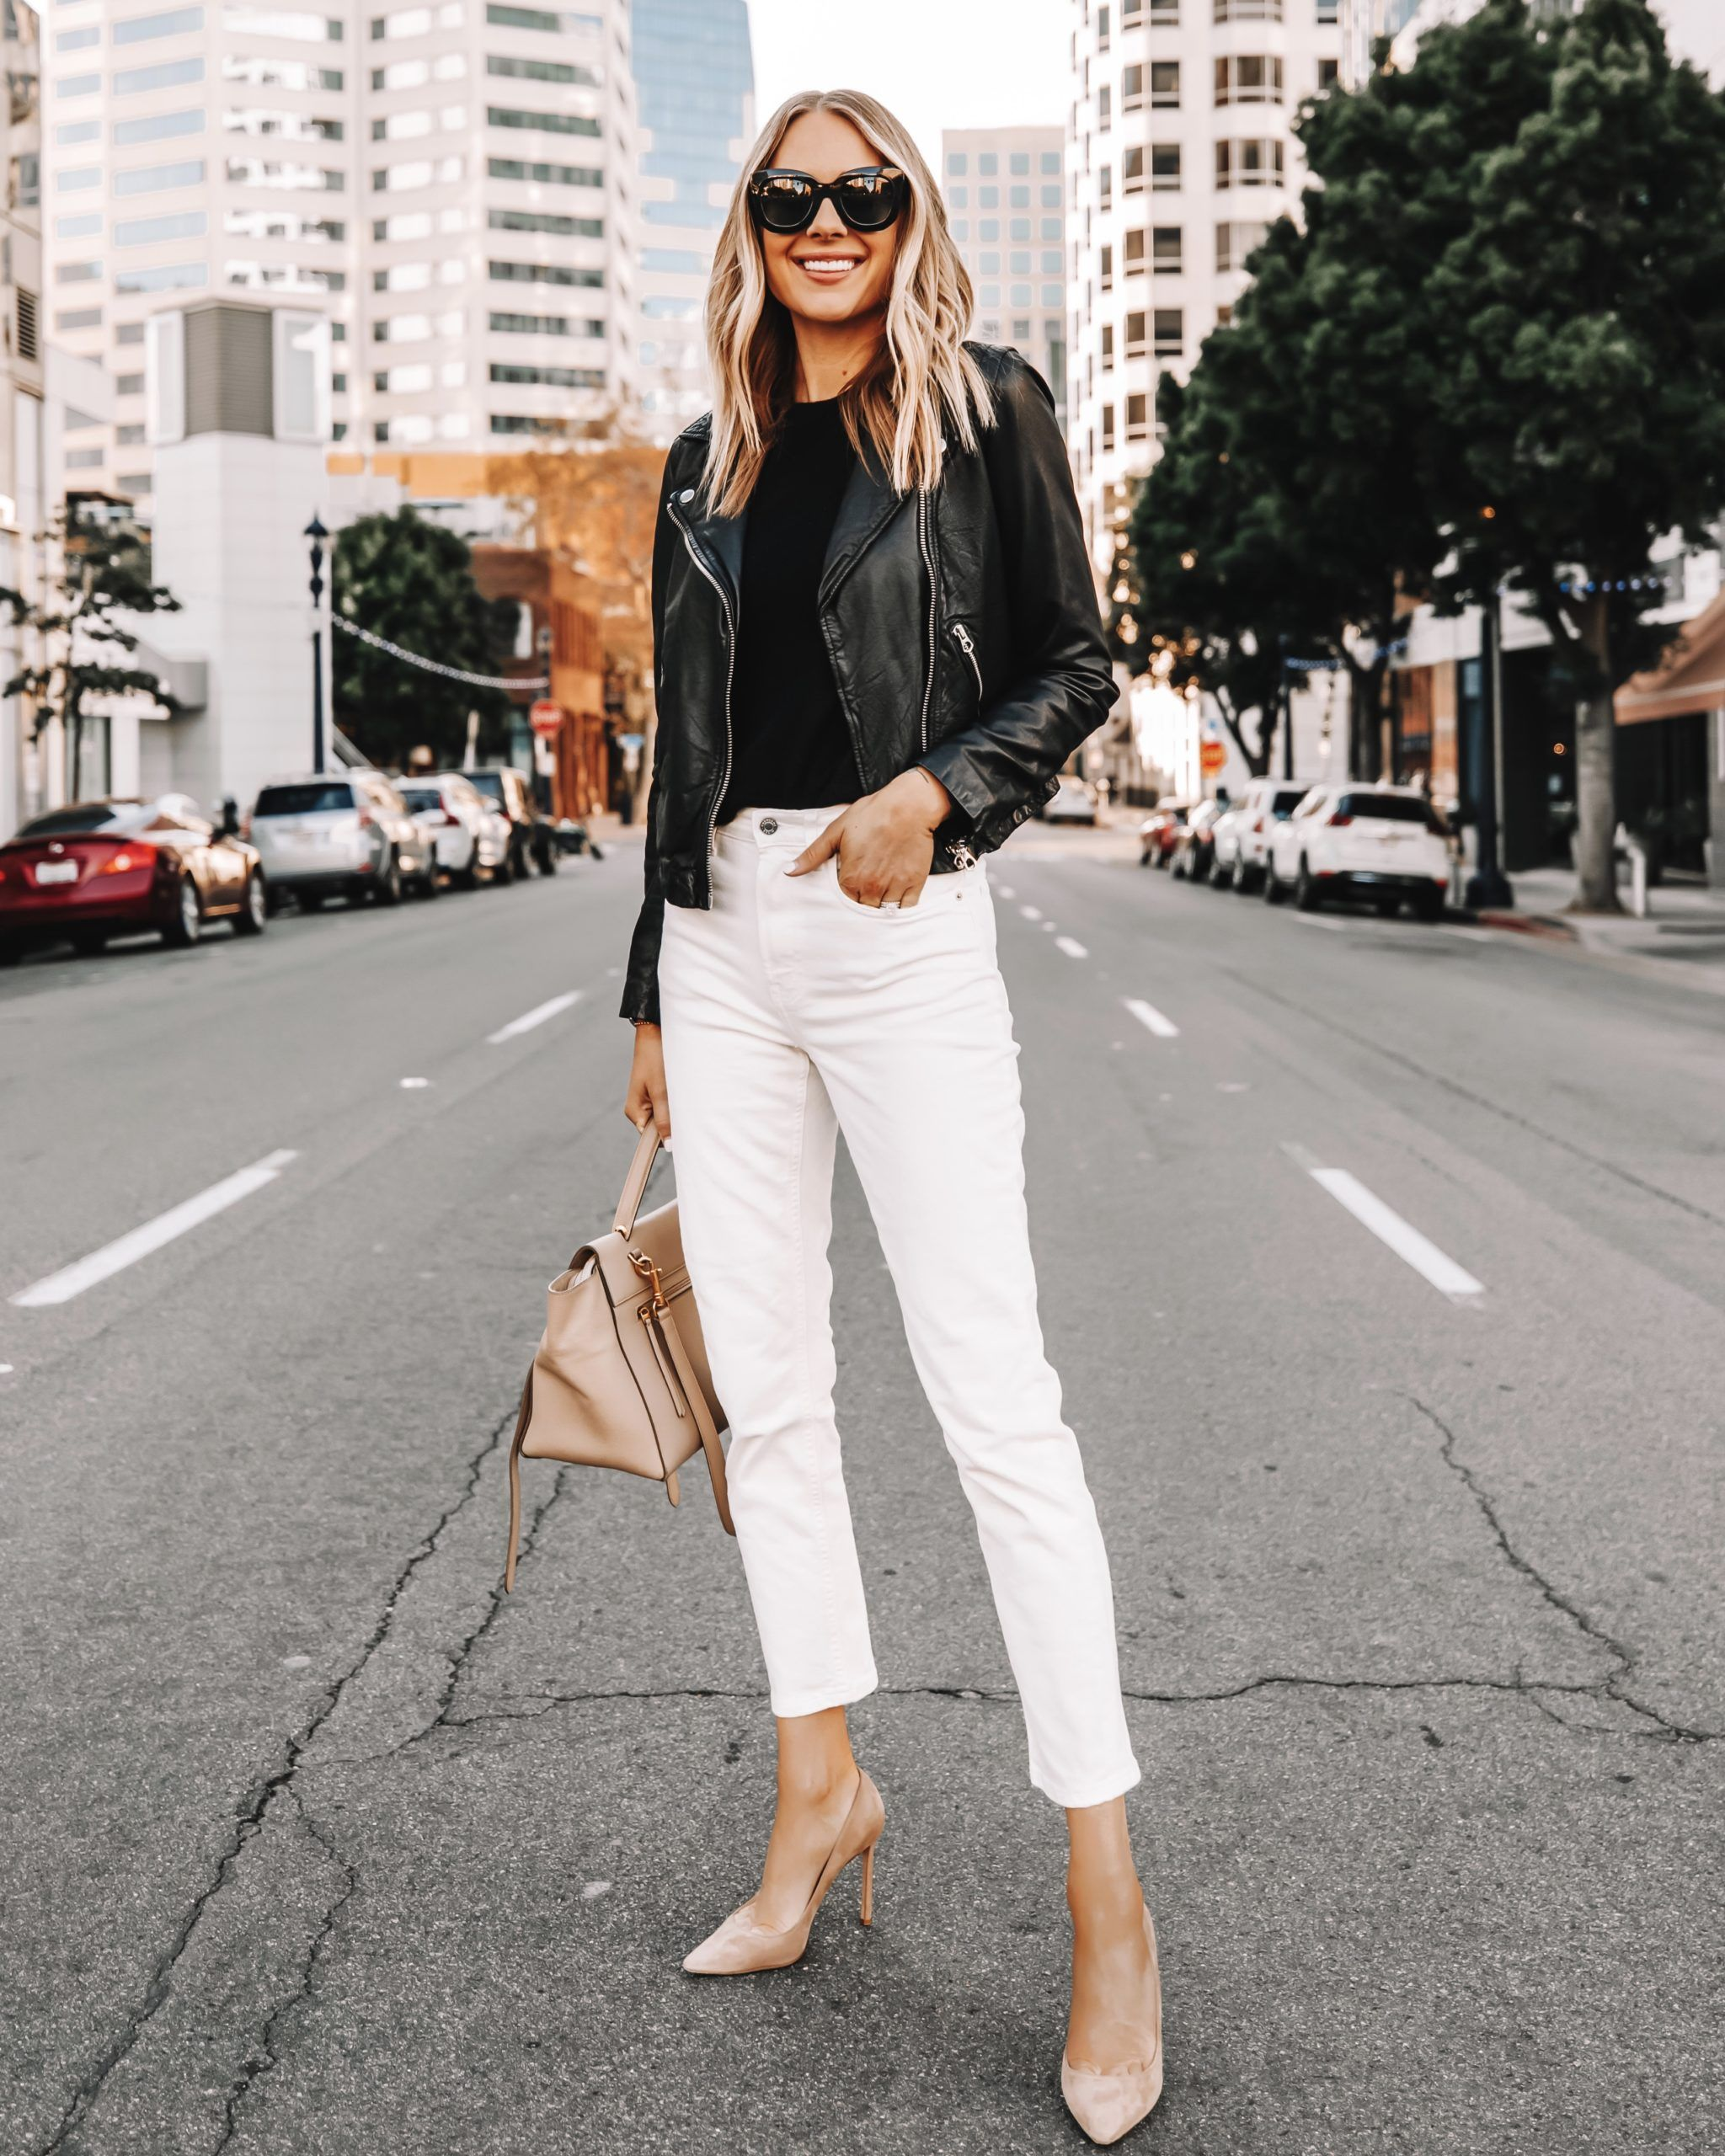 Madewell Black Leather Jacket White Jeans White Jeans Black Leather Jacket White Jeans O In 2020 Fashion Jackson Business Casual Outfits Black Leather Jacket Outfit